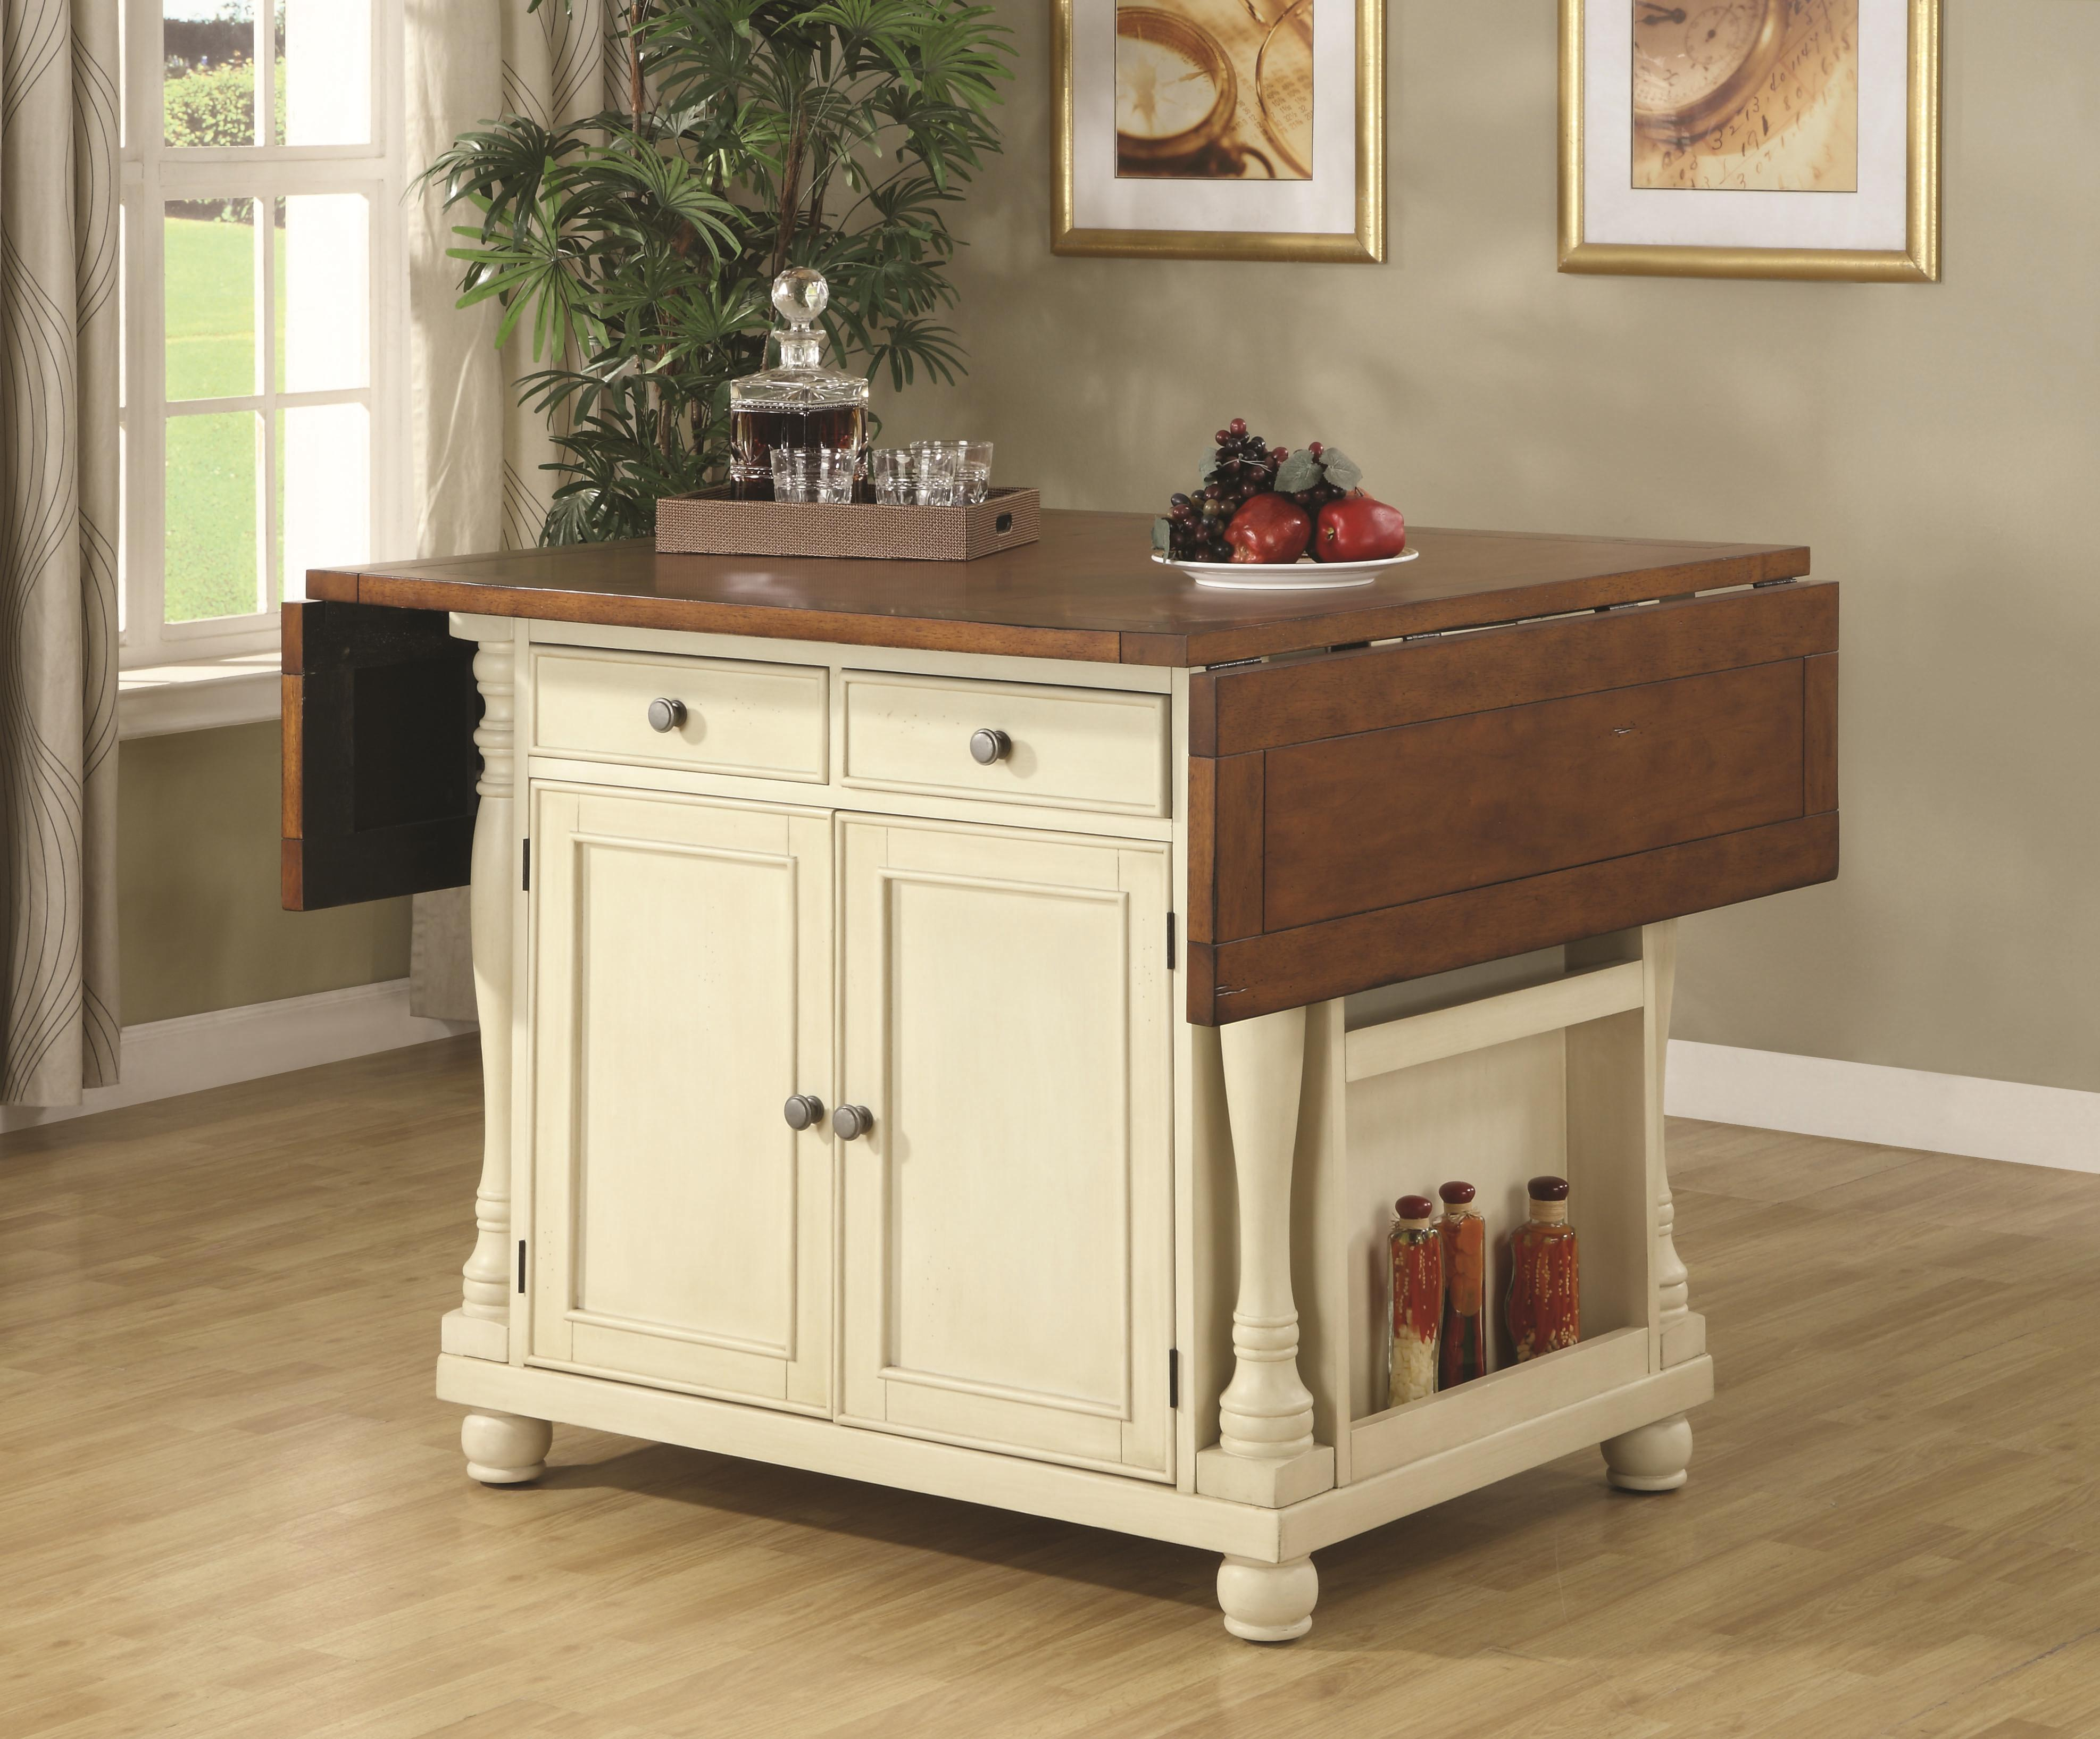 kitchen furniture island coaster kitchen carts two tone kitchen island with drop leaves value city furniture kitchen 9311